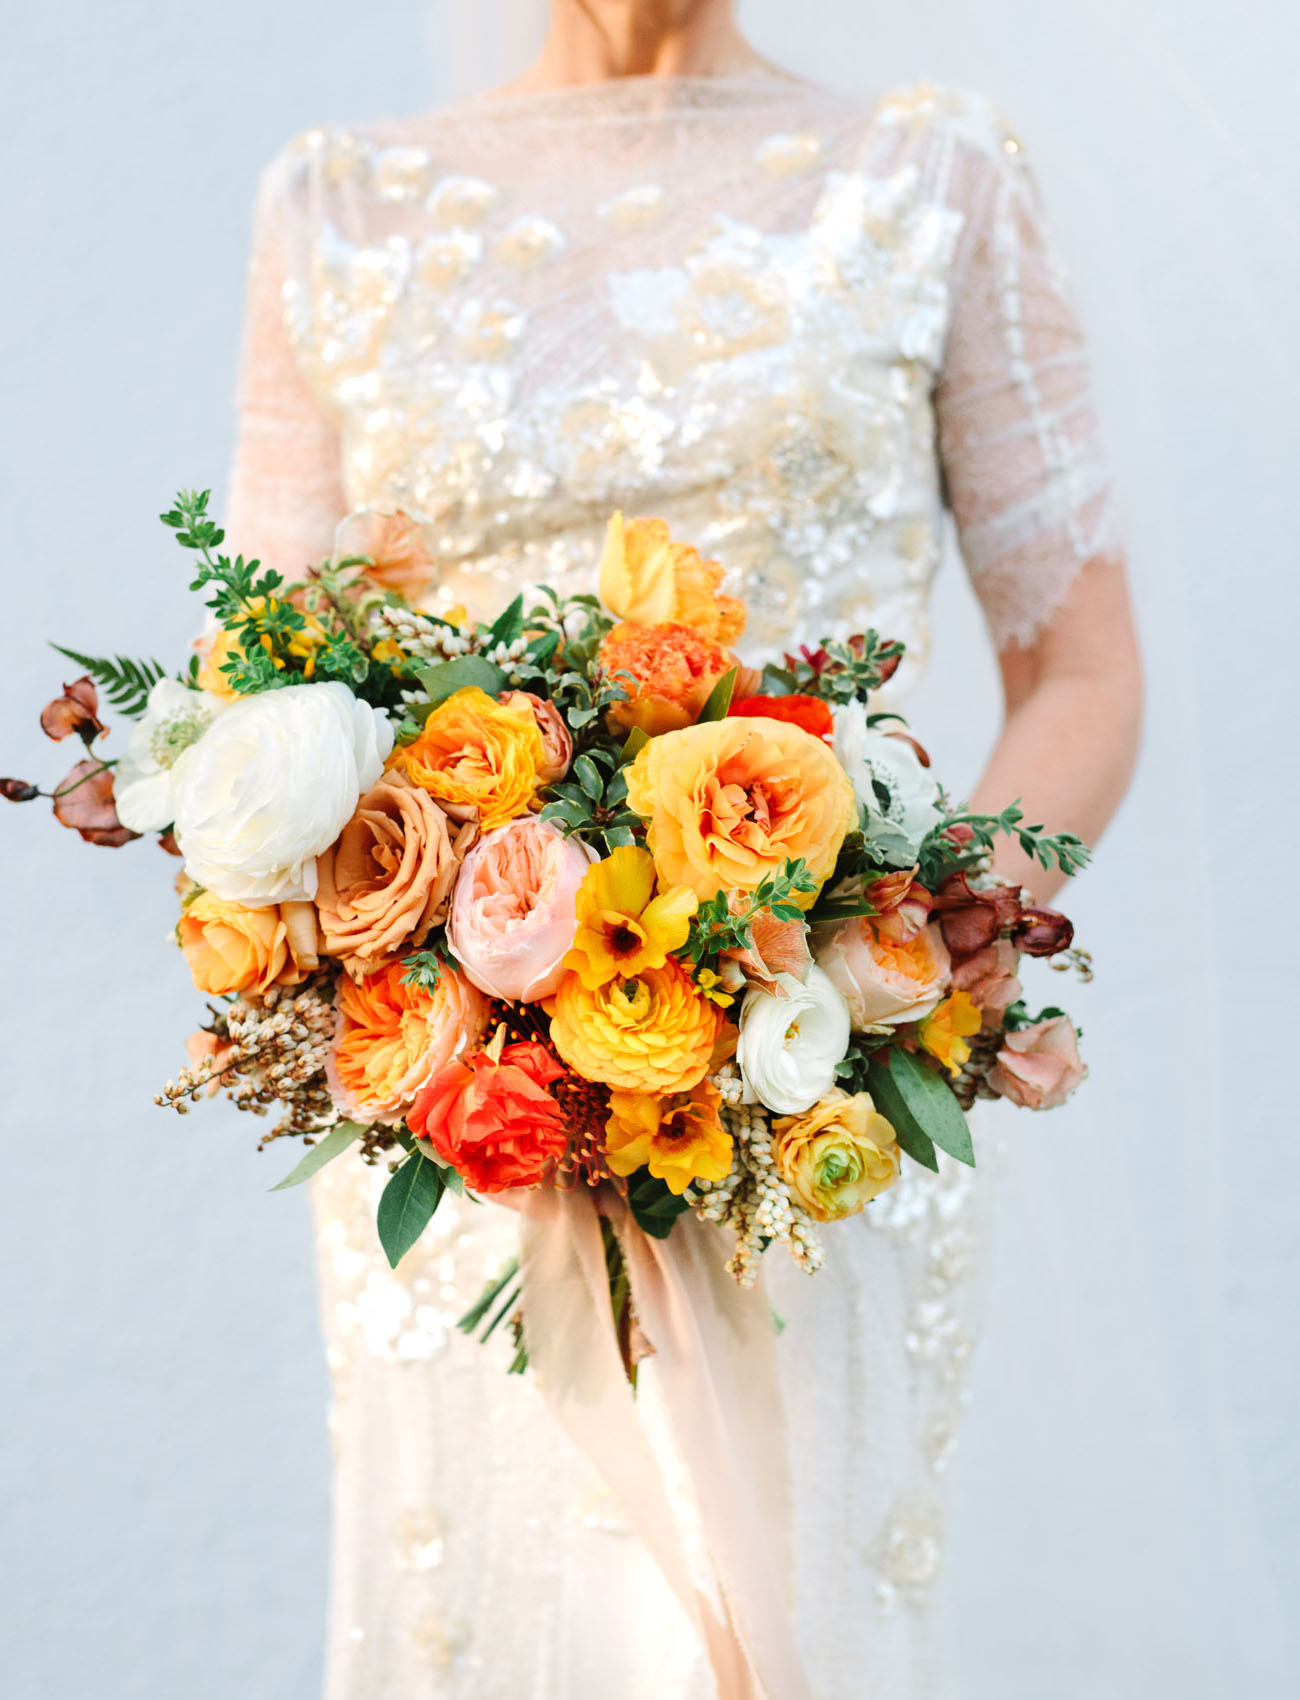 Look at the fantastic wedding bouquet with lush blooms in sunny shades